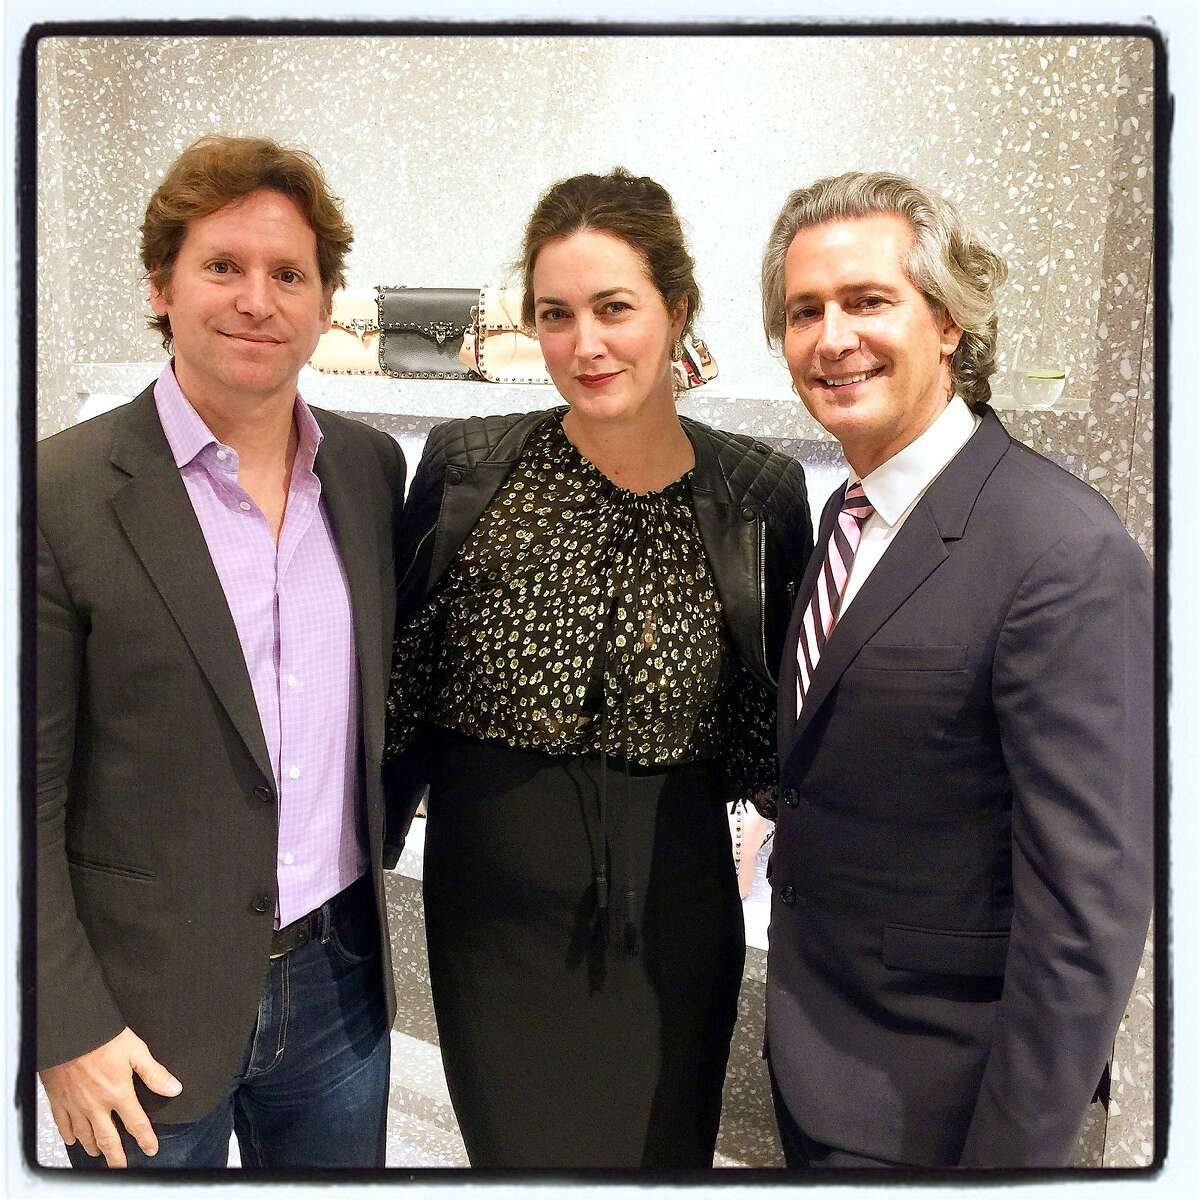 Trevor and Alexis Traina (left) with Valentino global ambassador Carlos Souza at the boutique for Fulk's book signing. Oct 2016.